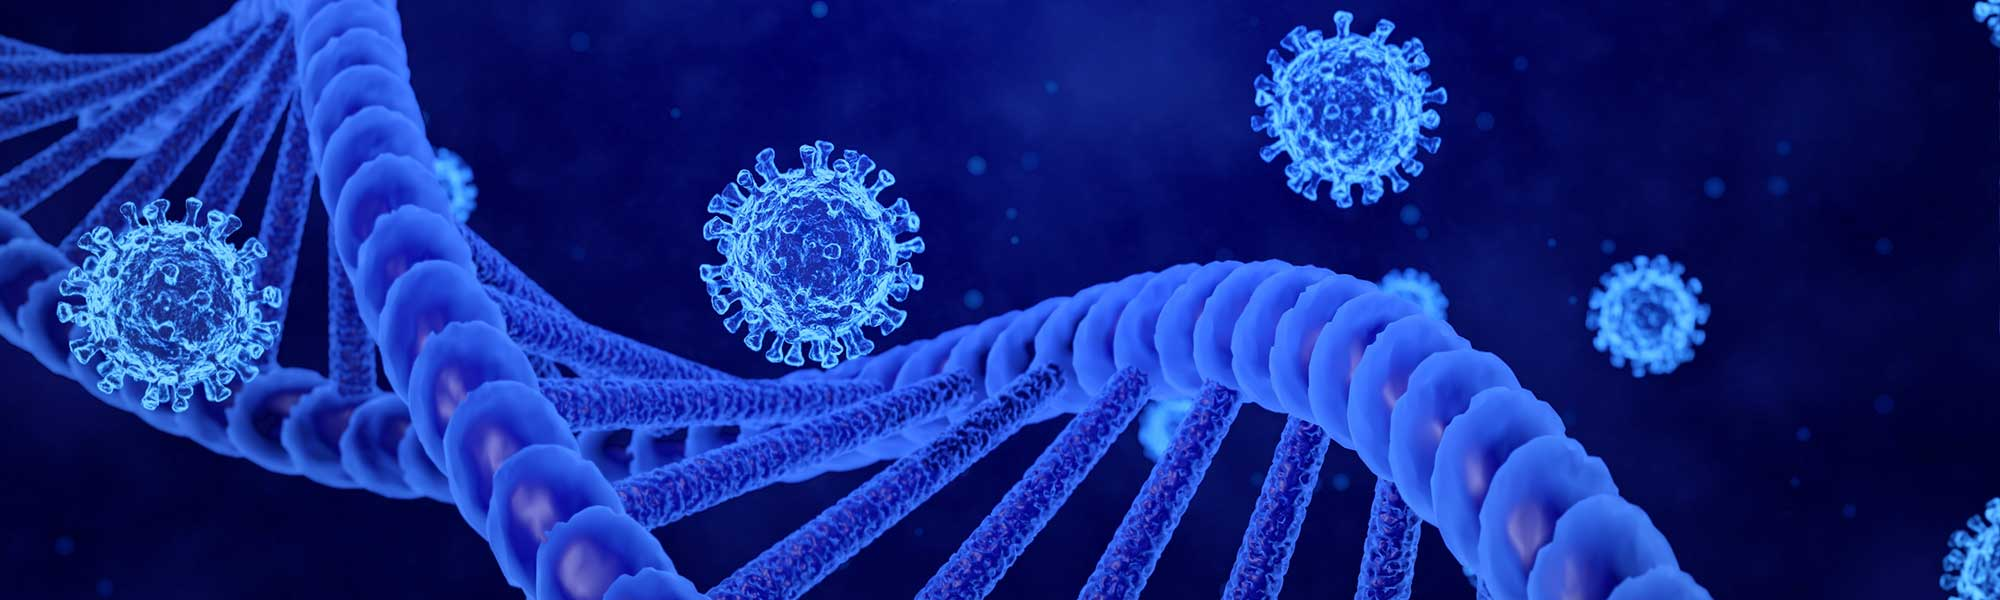 3D rendering COVID-19 and DNA helix models moving in abstract blue background